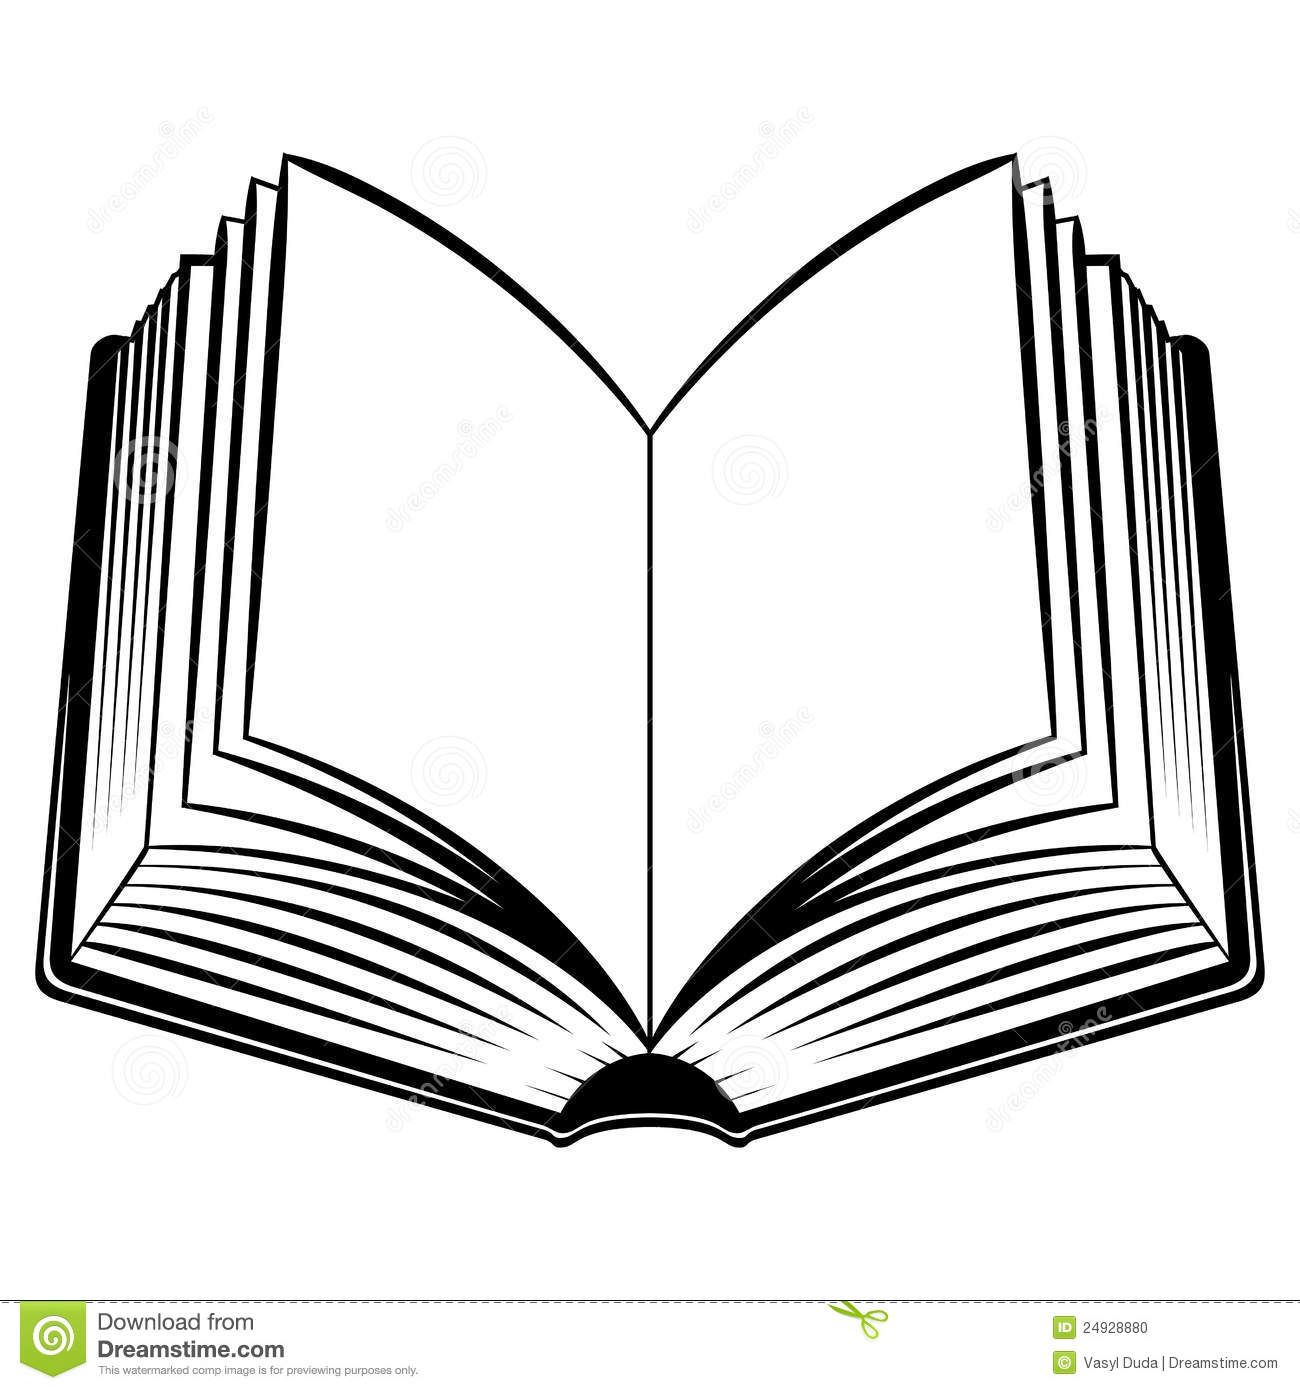 Image result for books outline.